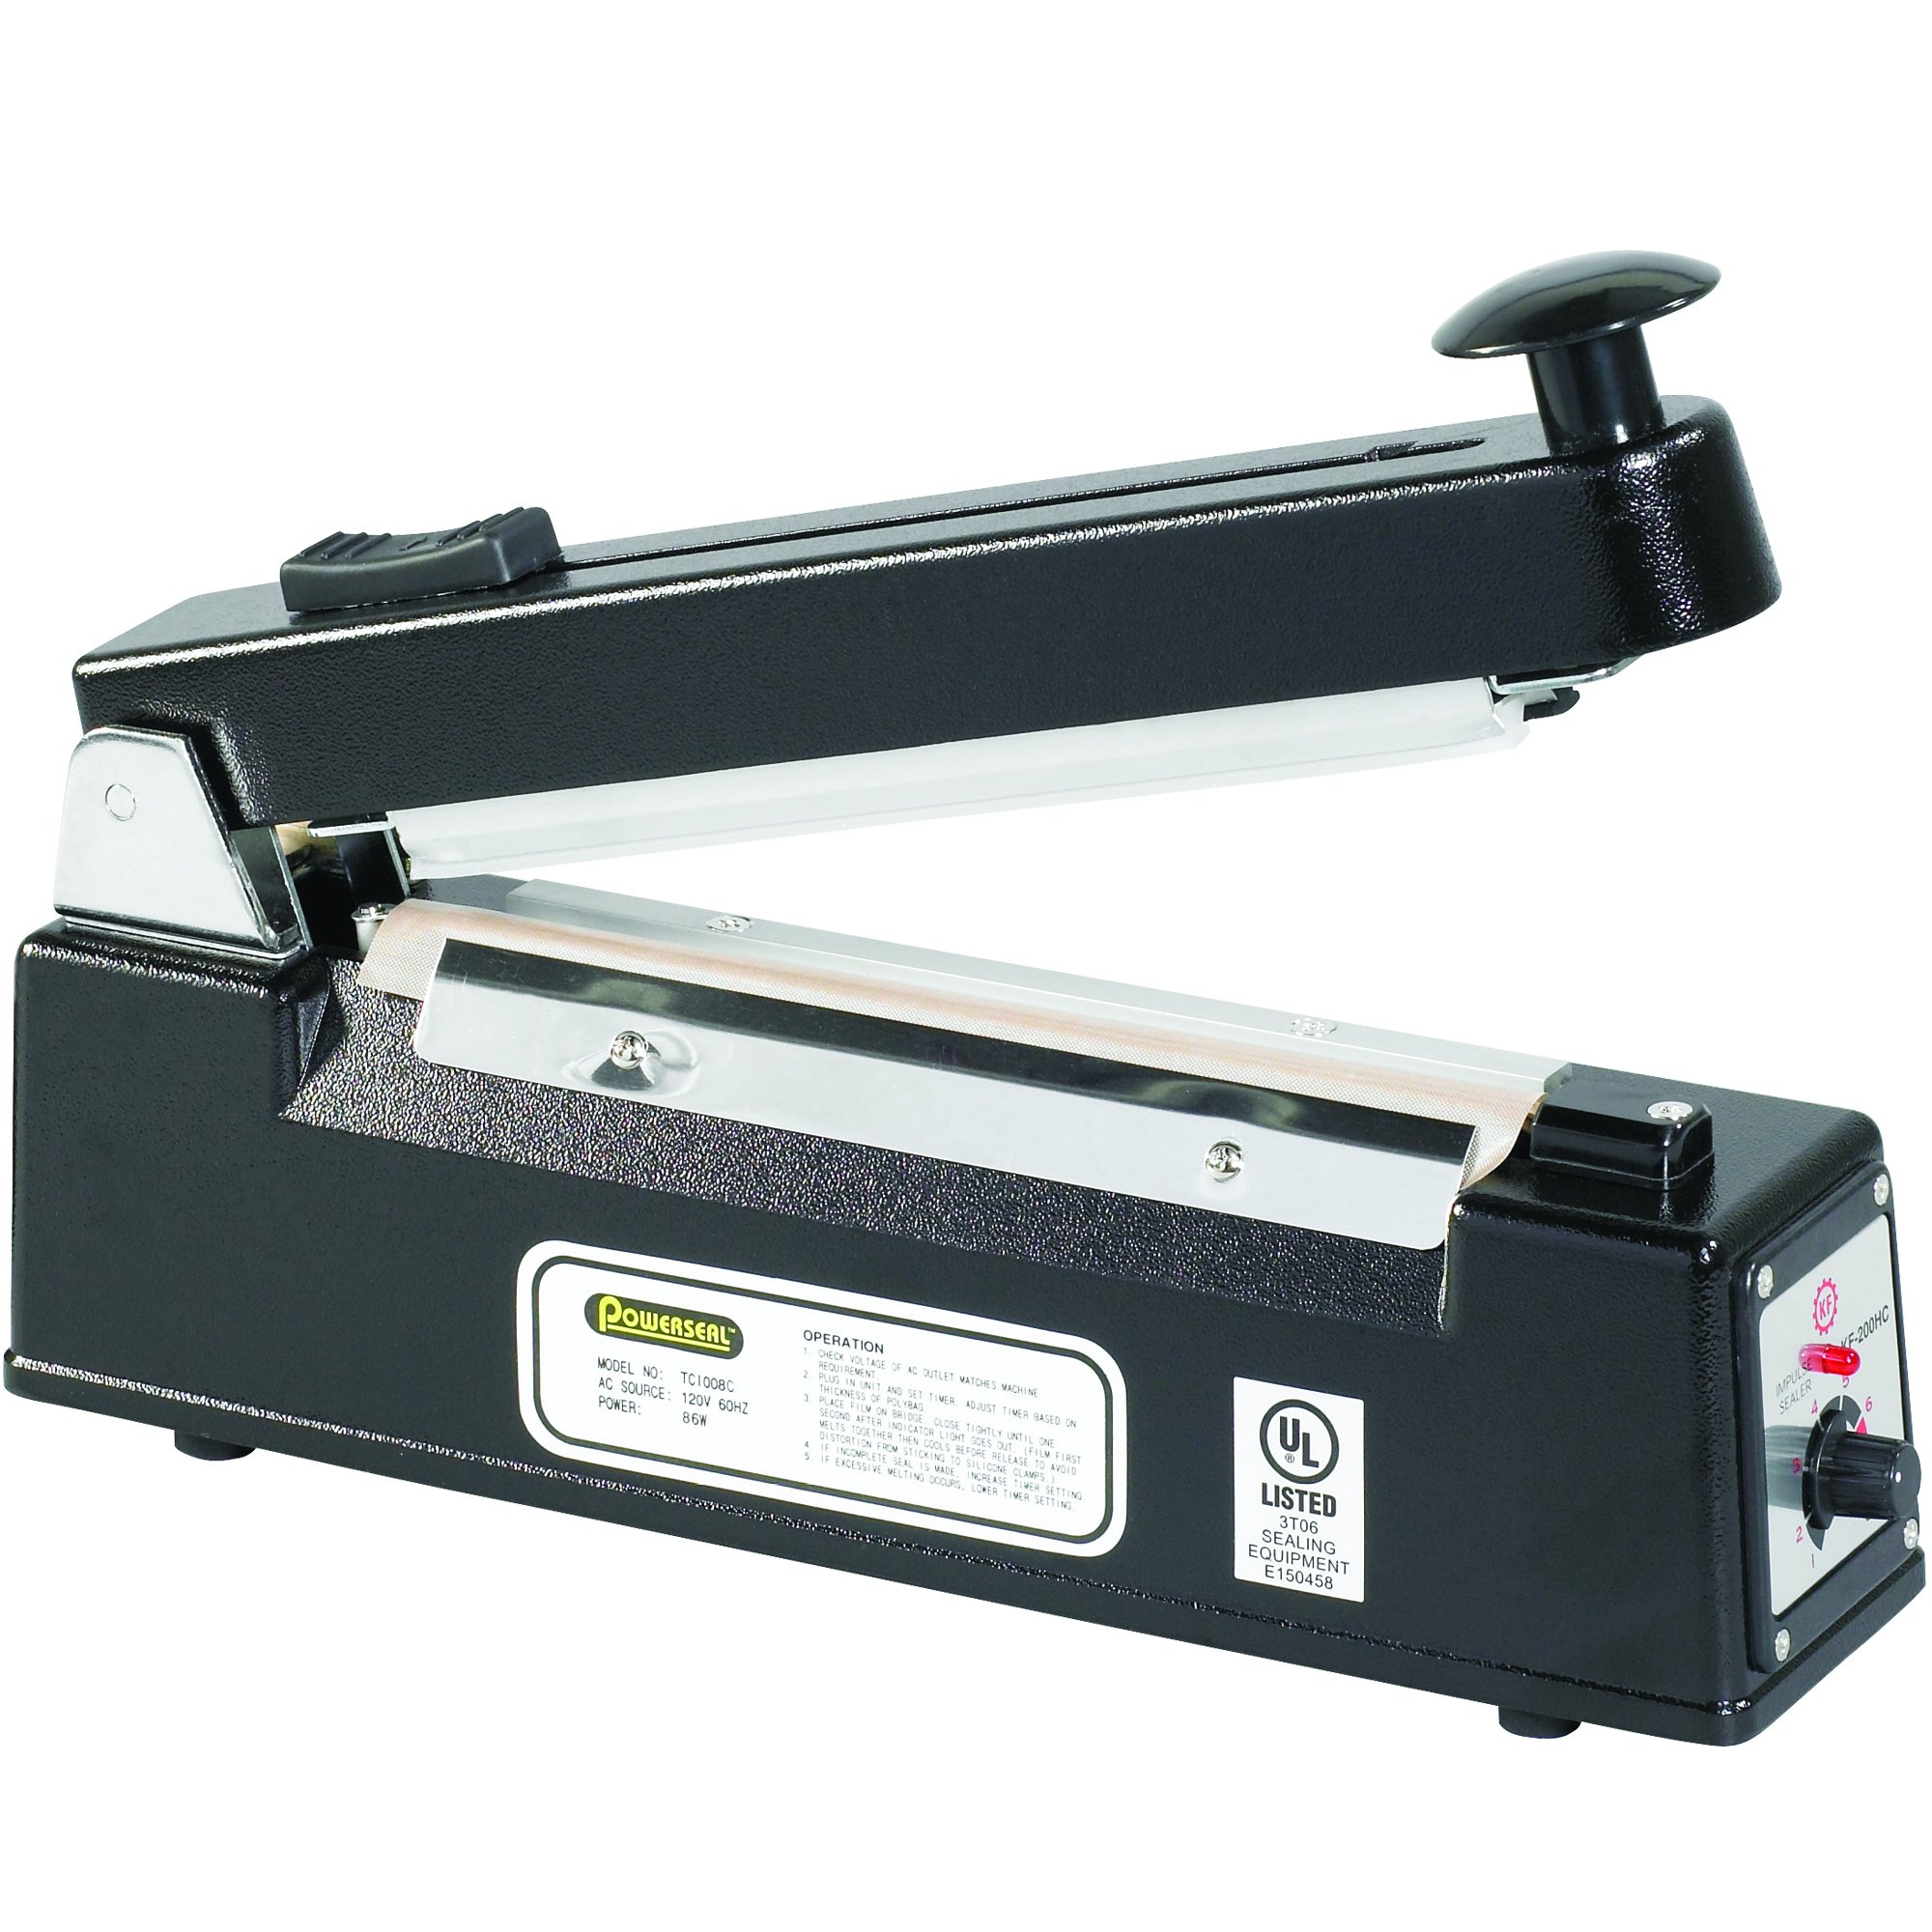 BOX USA BSPBC8 Impulse Hand Sealers with Cutters, 8'' x 1/16''